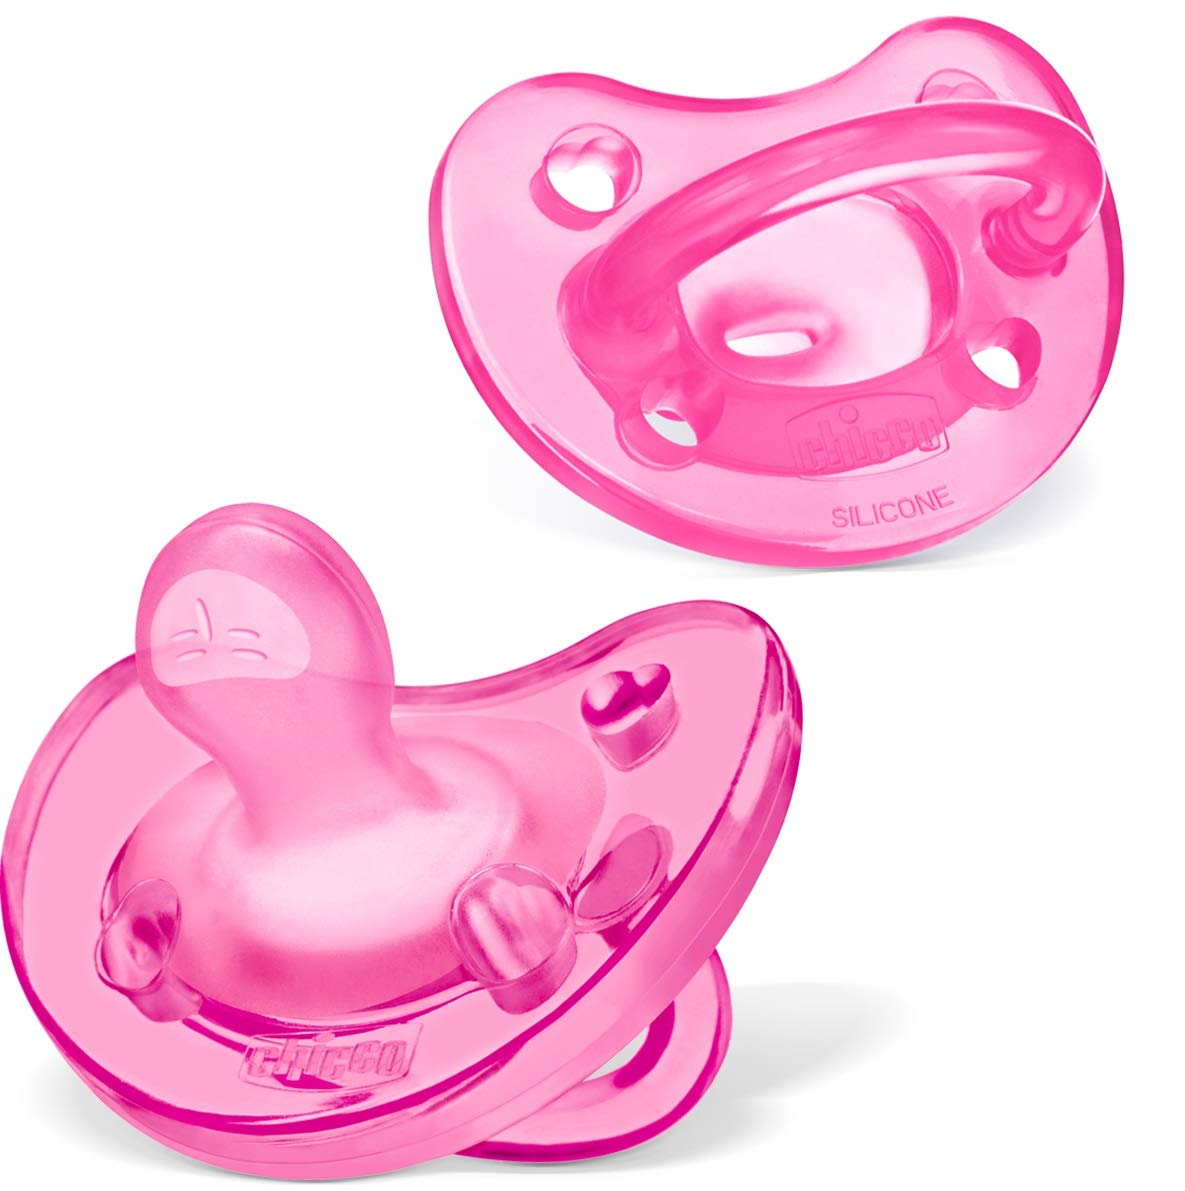 Chicco PhysioForma 100% Soft Silicone One Piece Pacifier for Babies 0-6 Months, Pink, Orthodontic Nipple, BPA-Free, 2-count in Sterilizing Case